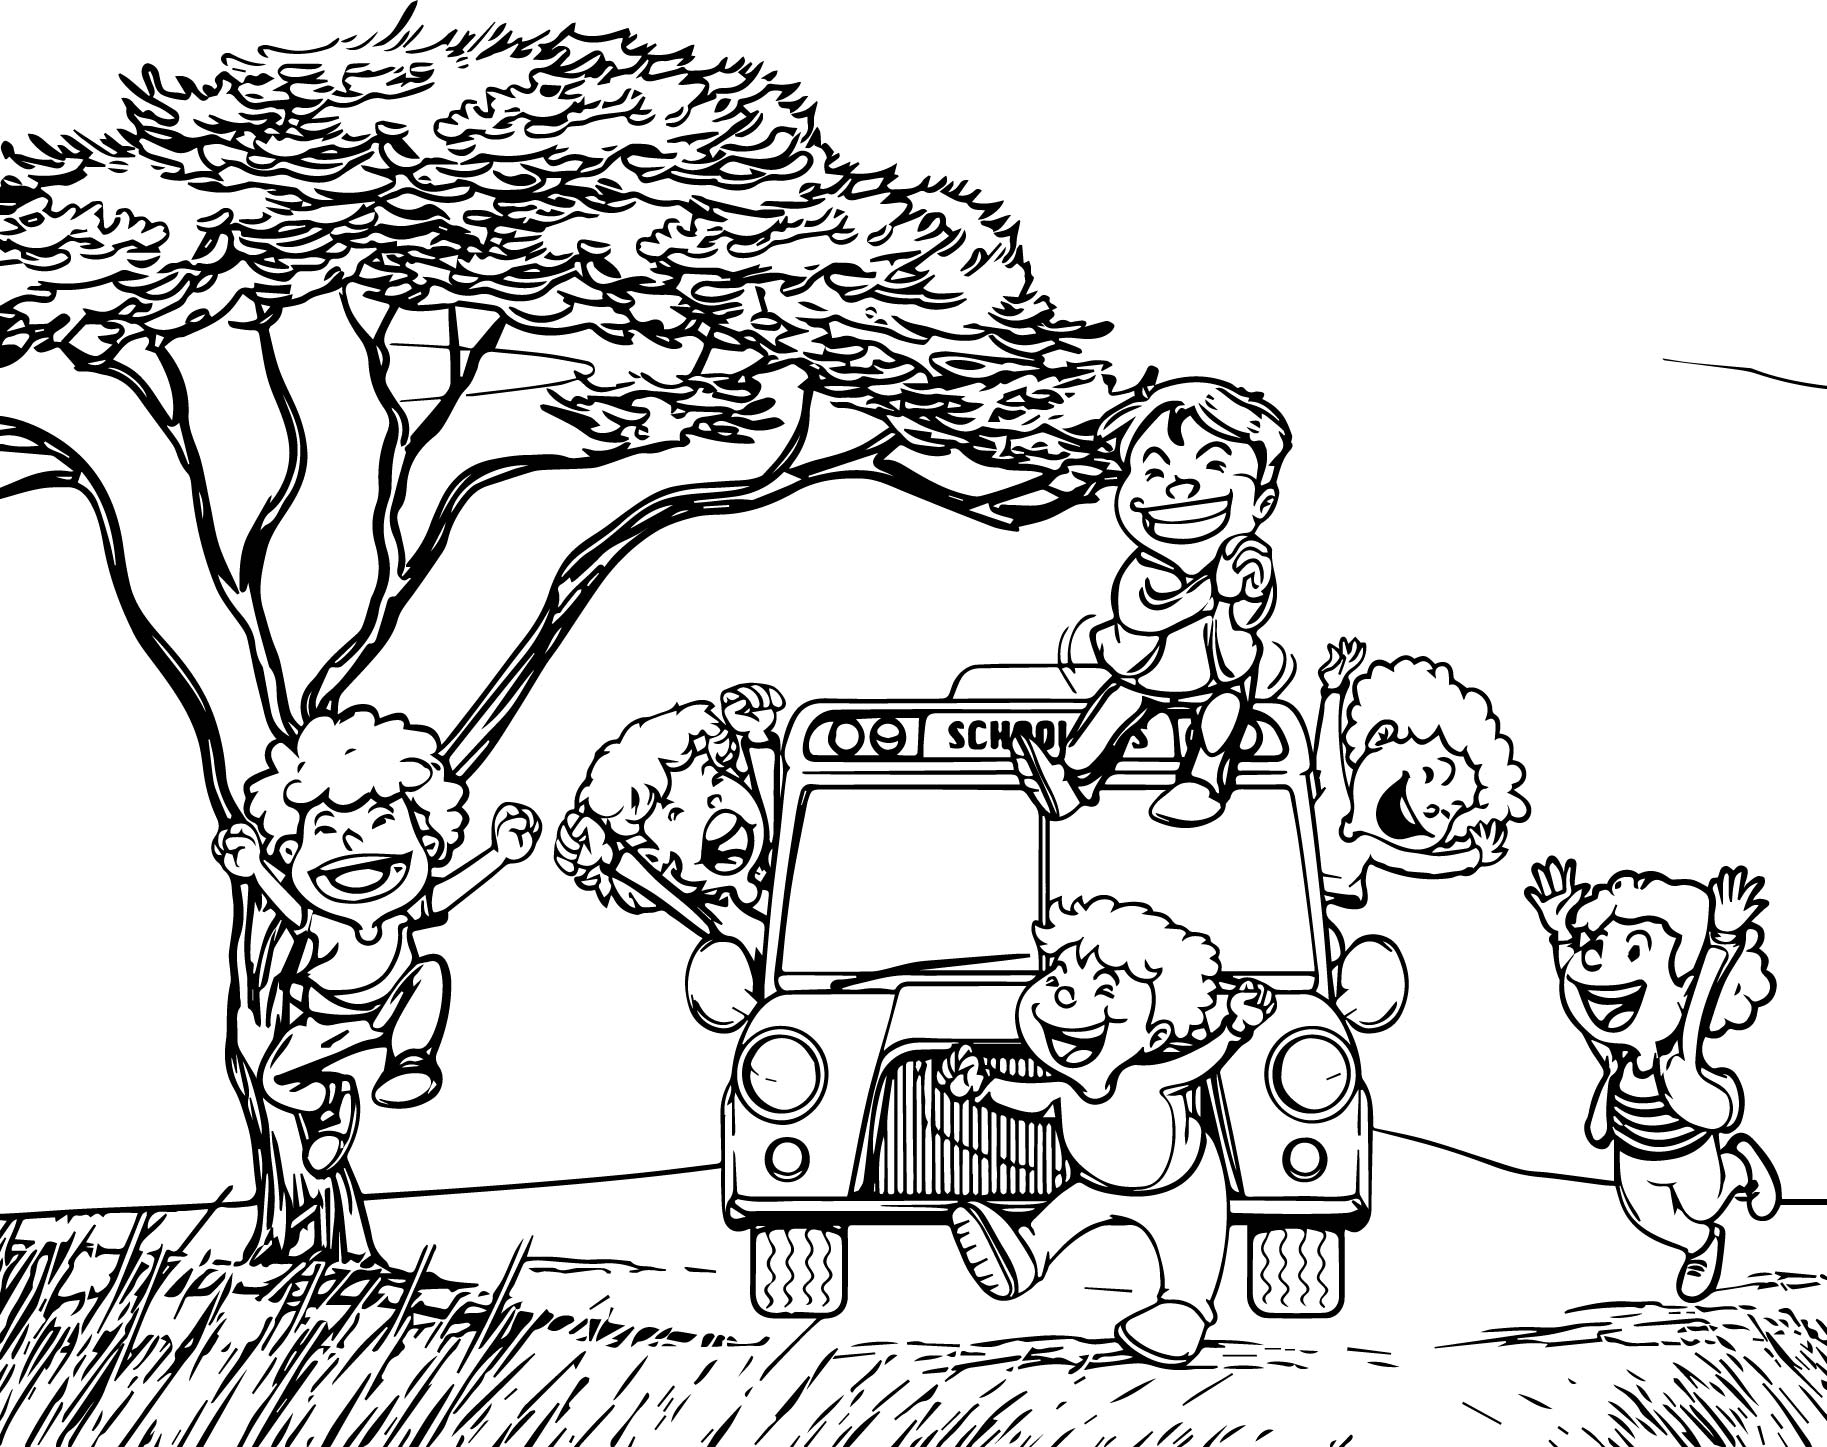 Crazy Child School Bus Coloring Page